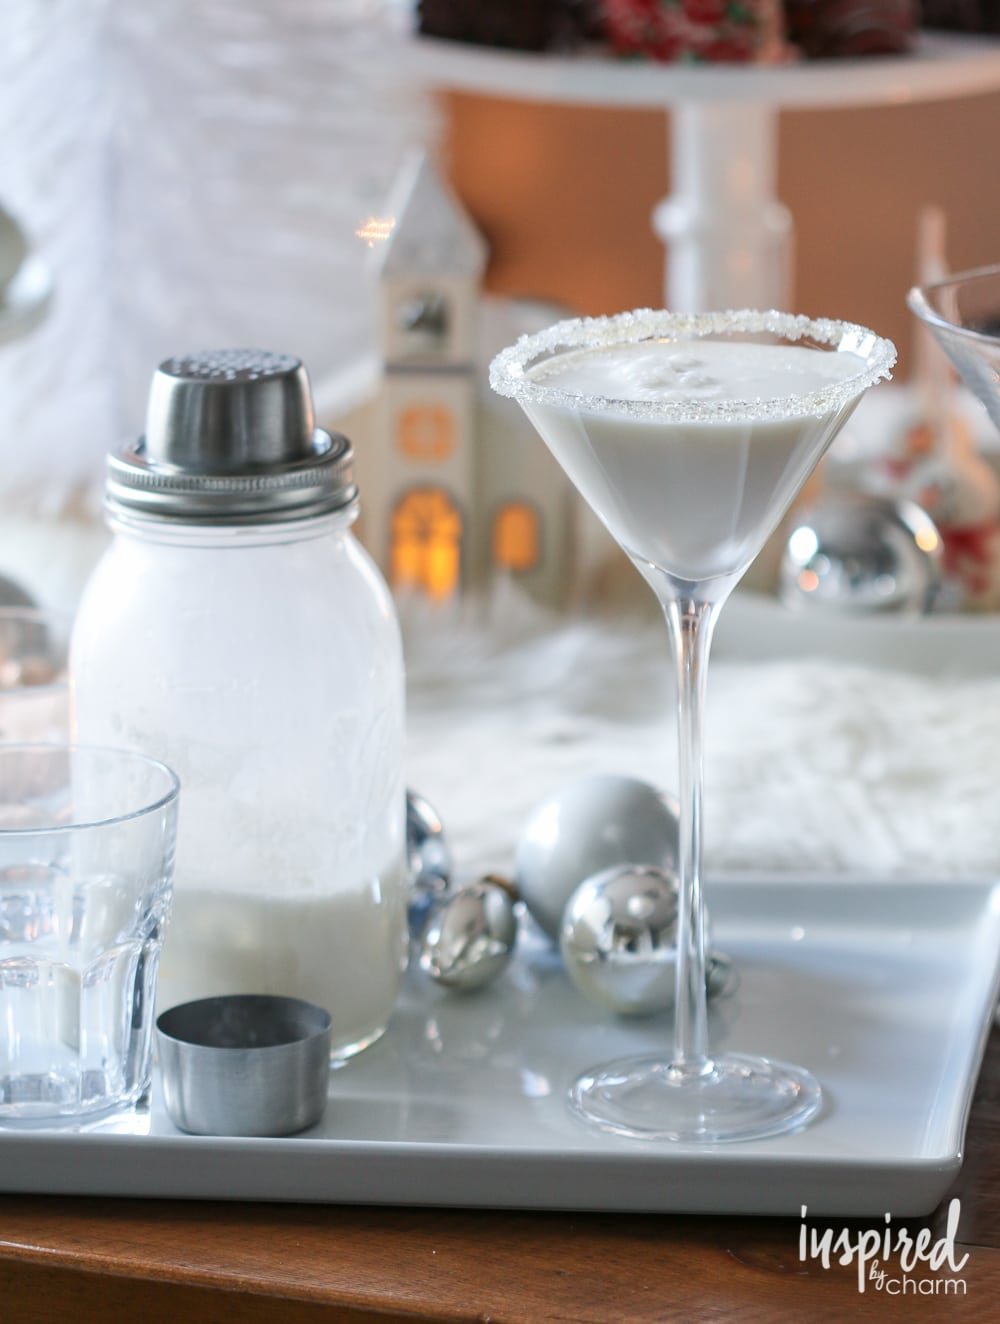 White Christmas Martini - Inspired by Charm